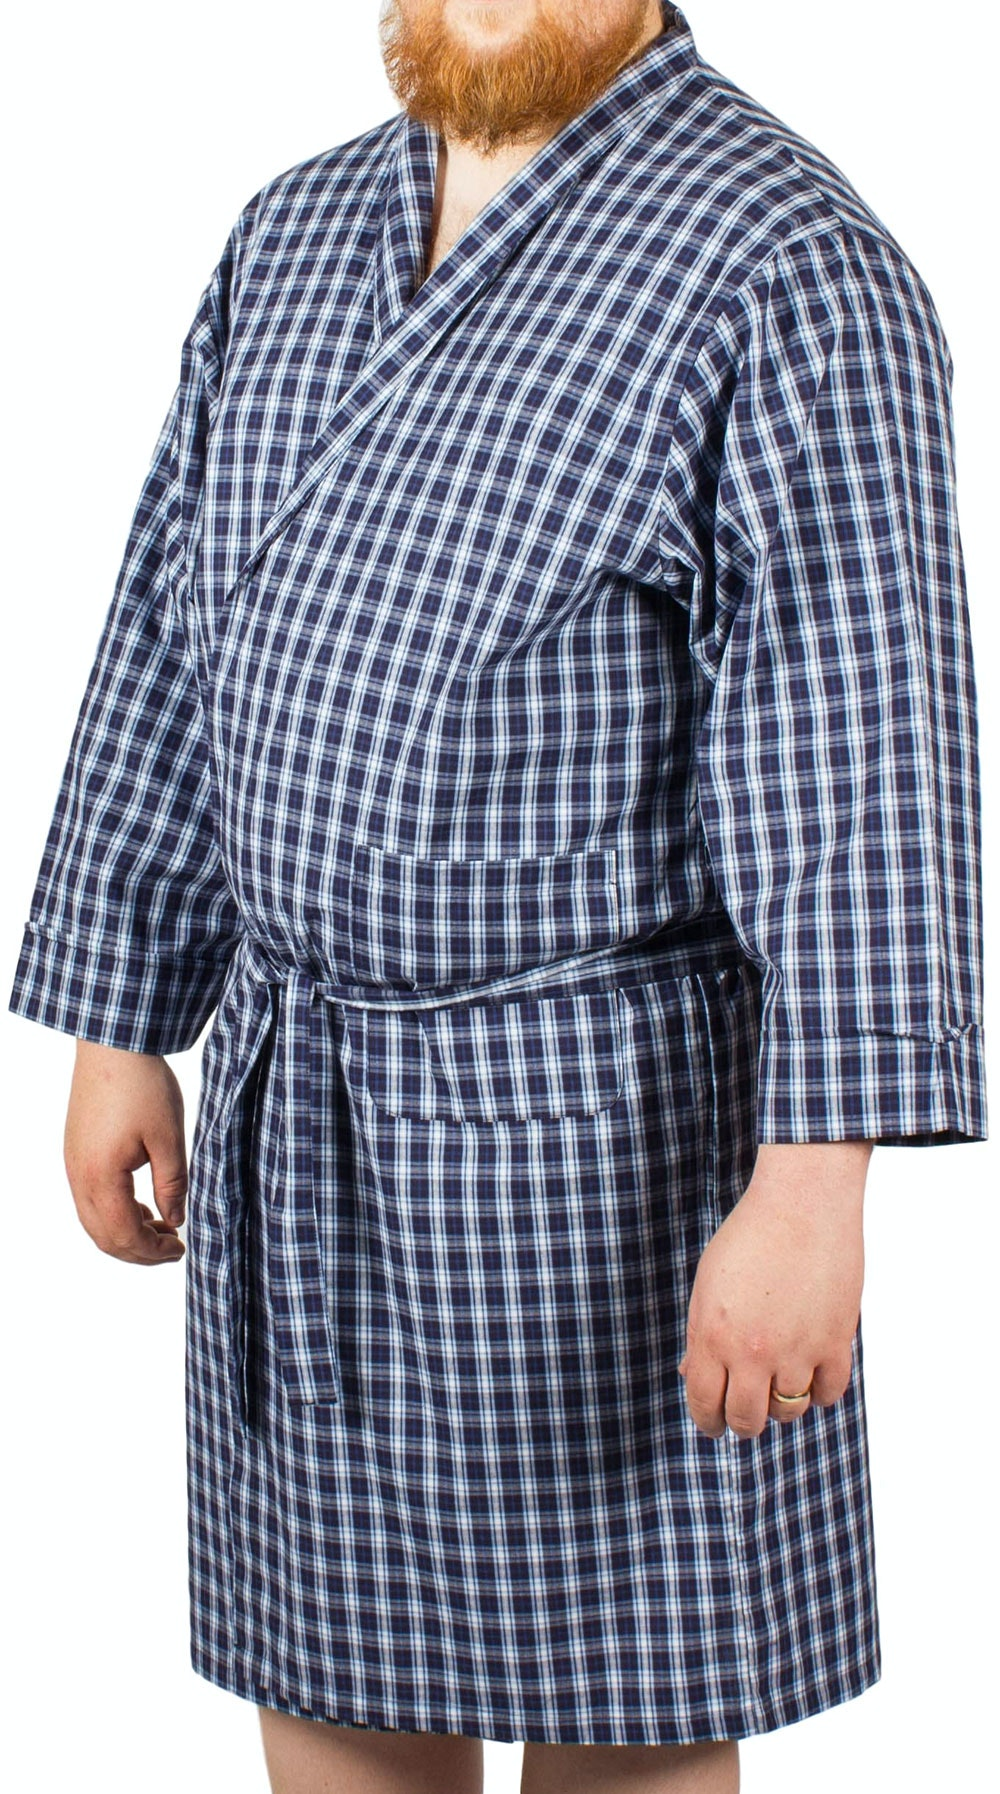 Rael Brook Dressing Gown Blue/White Check